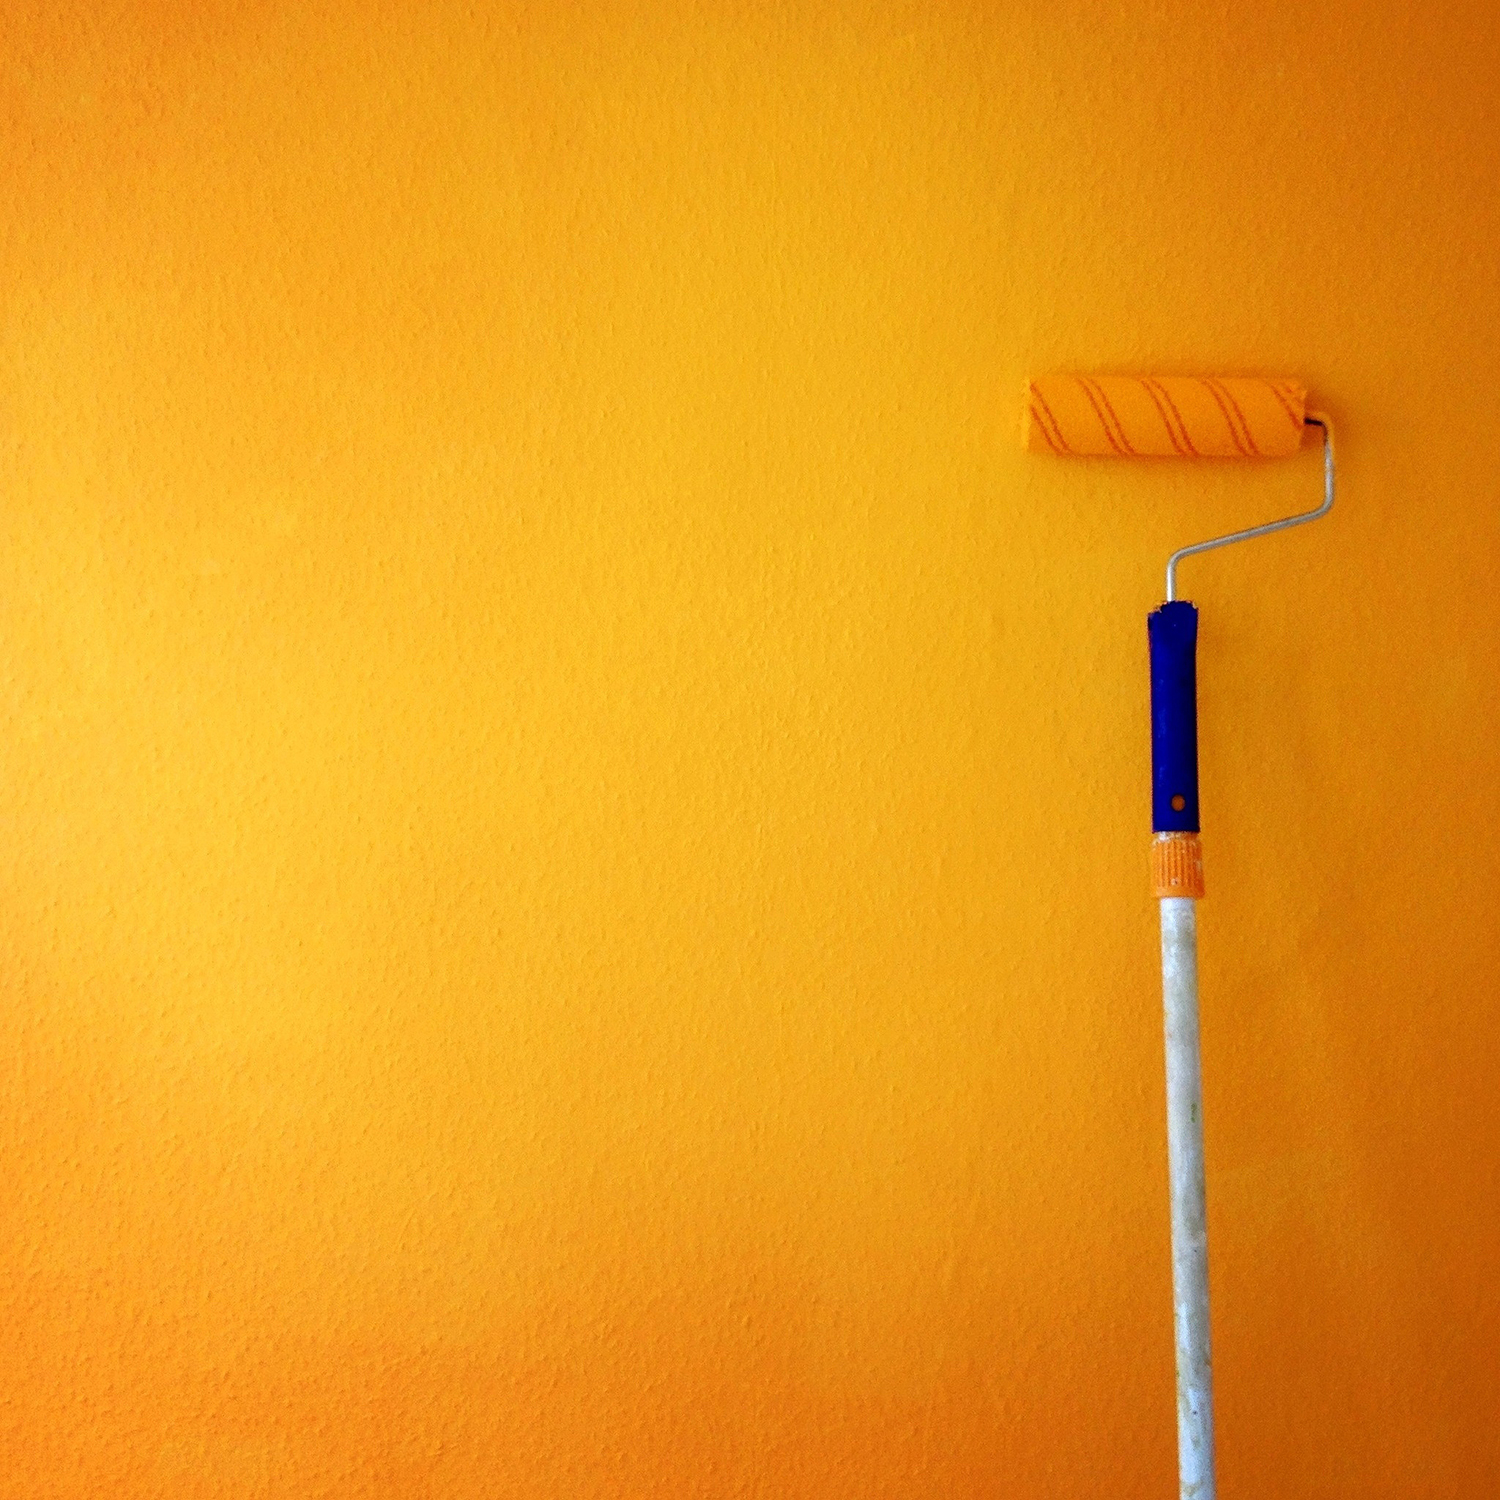 Paint roller leaning on yellow-orange accent wall